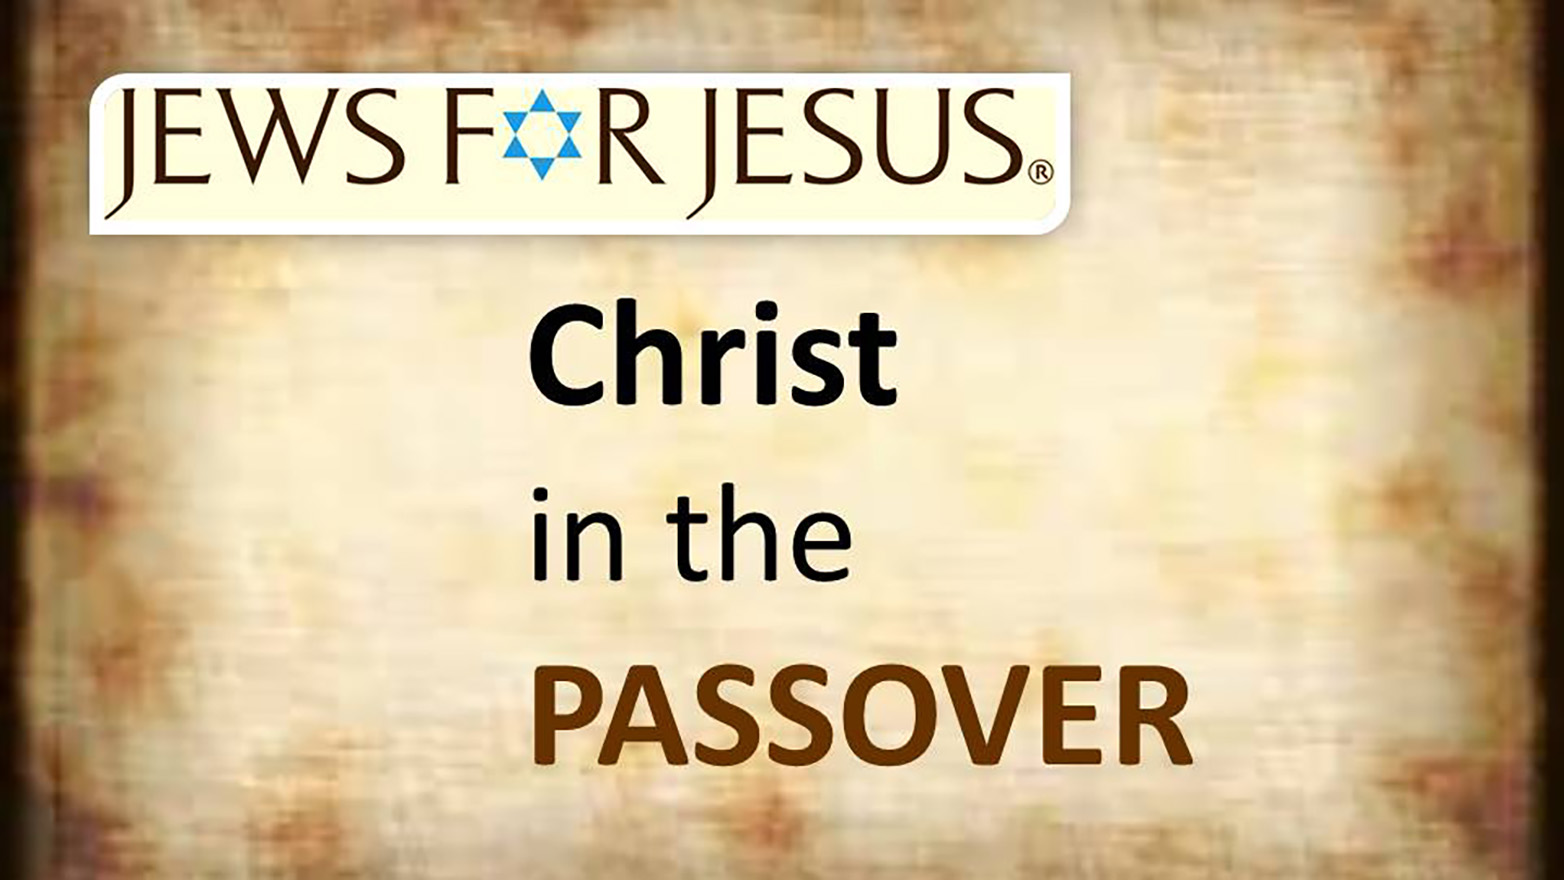 JEWS FOR JESUS CHRIST IN THE PASSOVER 1440 880.jpg